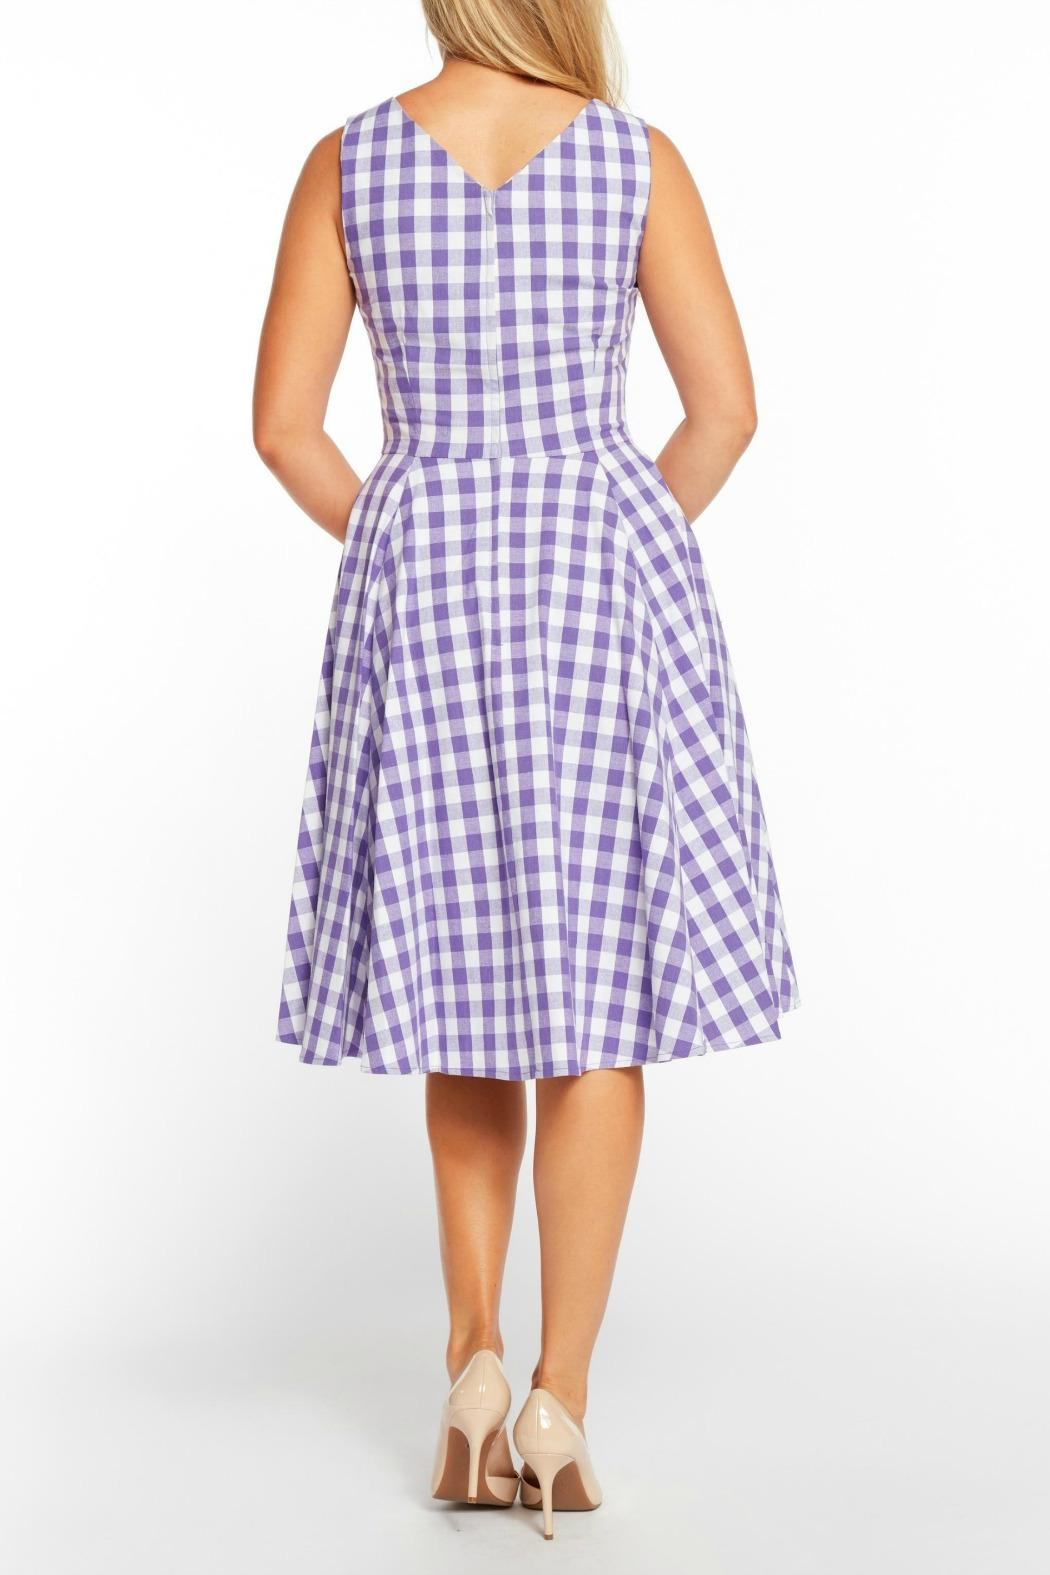 188c1f0cdd2 MHGS Lavender Gingham Dress from Florida by Mad Hatter General Store ...